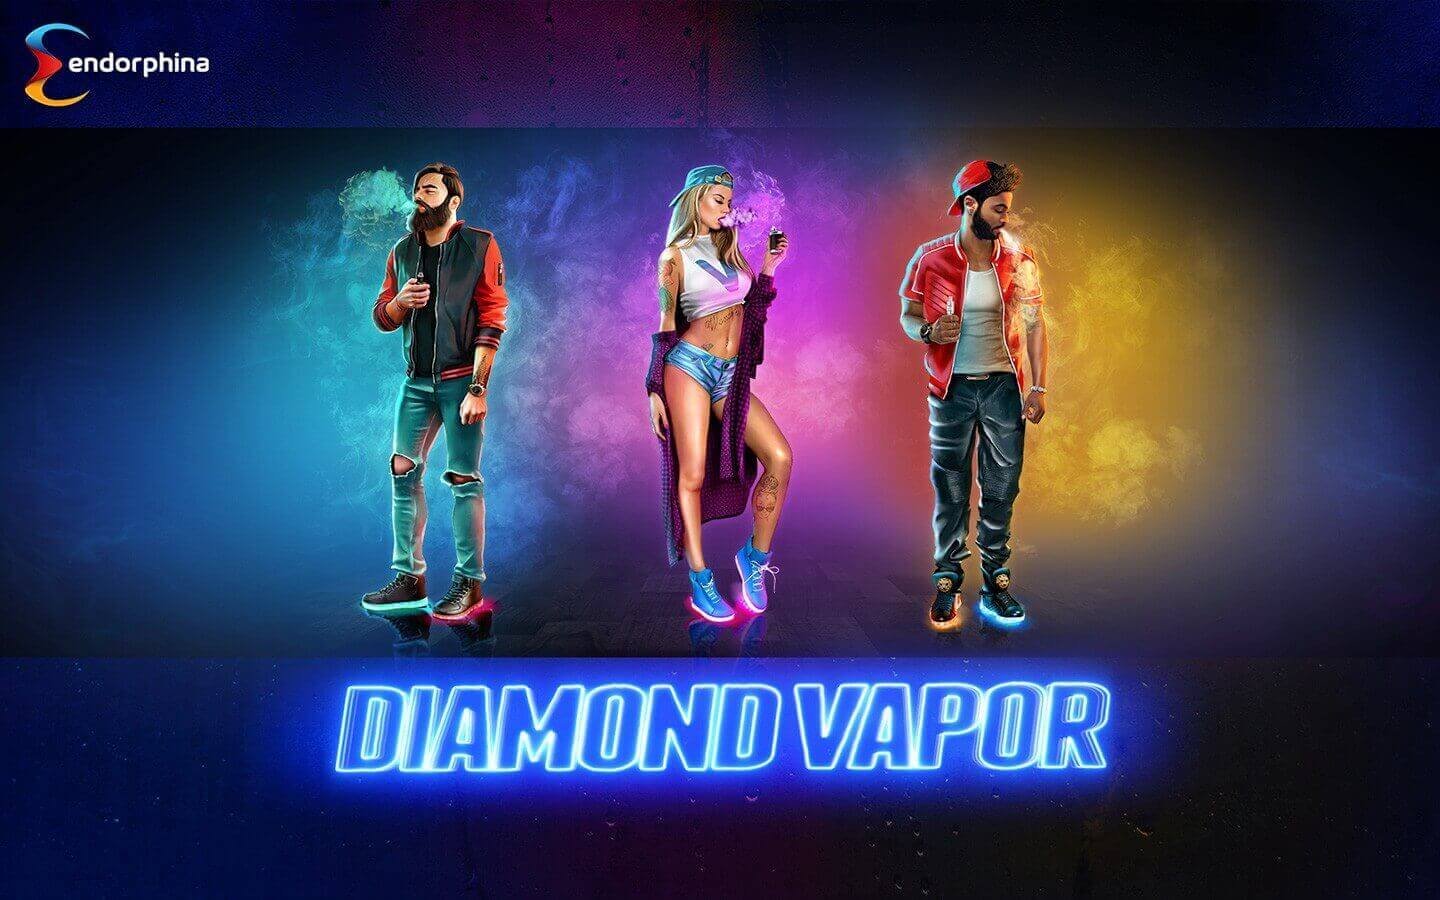 Diamond Vapor review pokie